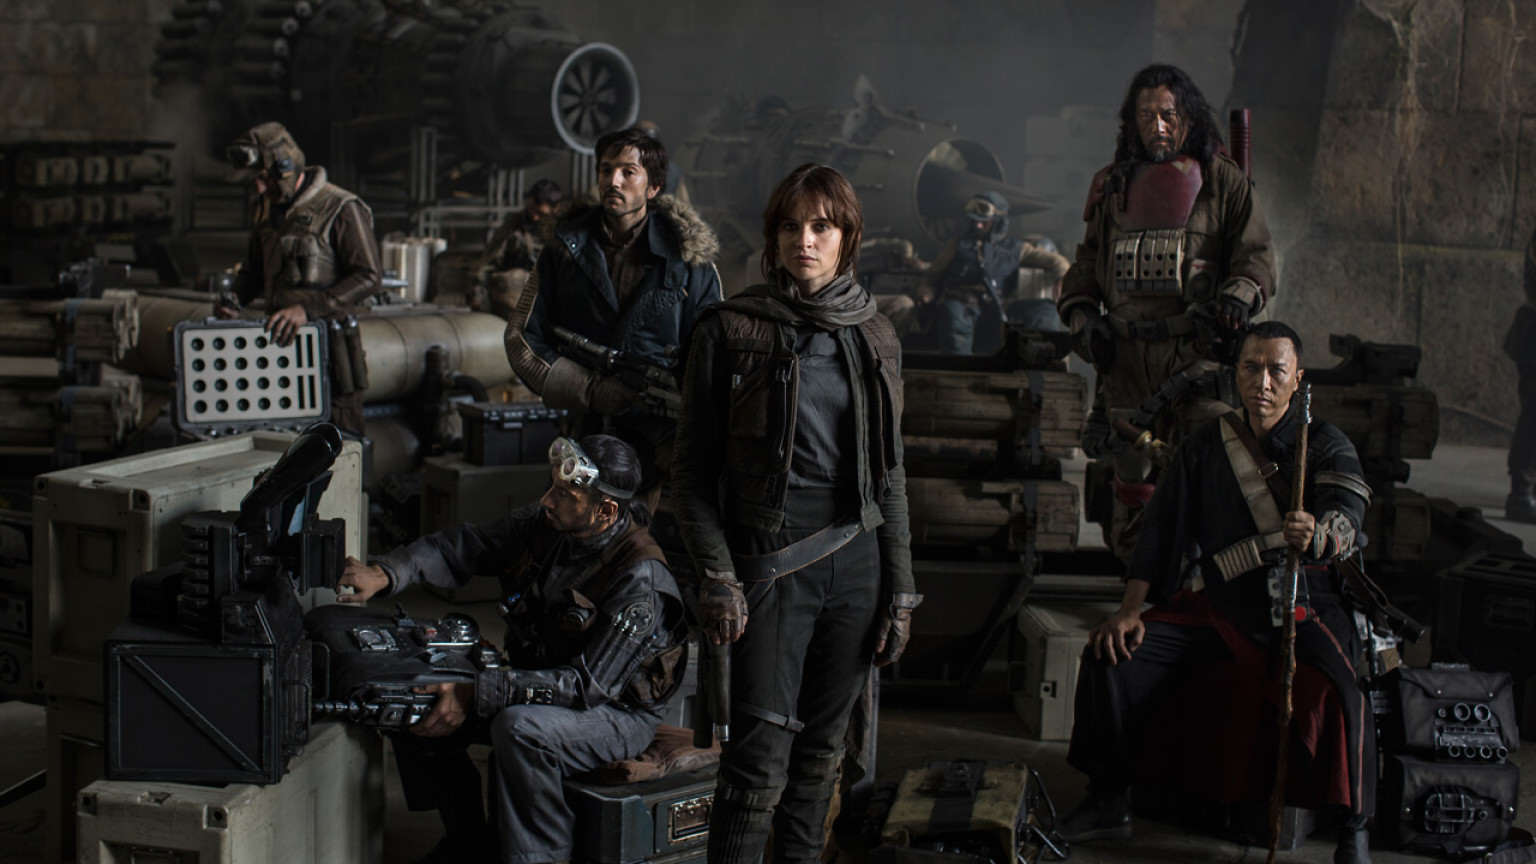 rogue one cast photo d23 1536x864 521514304075 Rogue One: A Star Wars Story Teaser Leaked Online